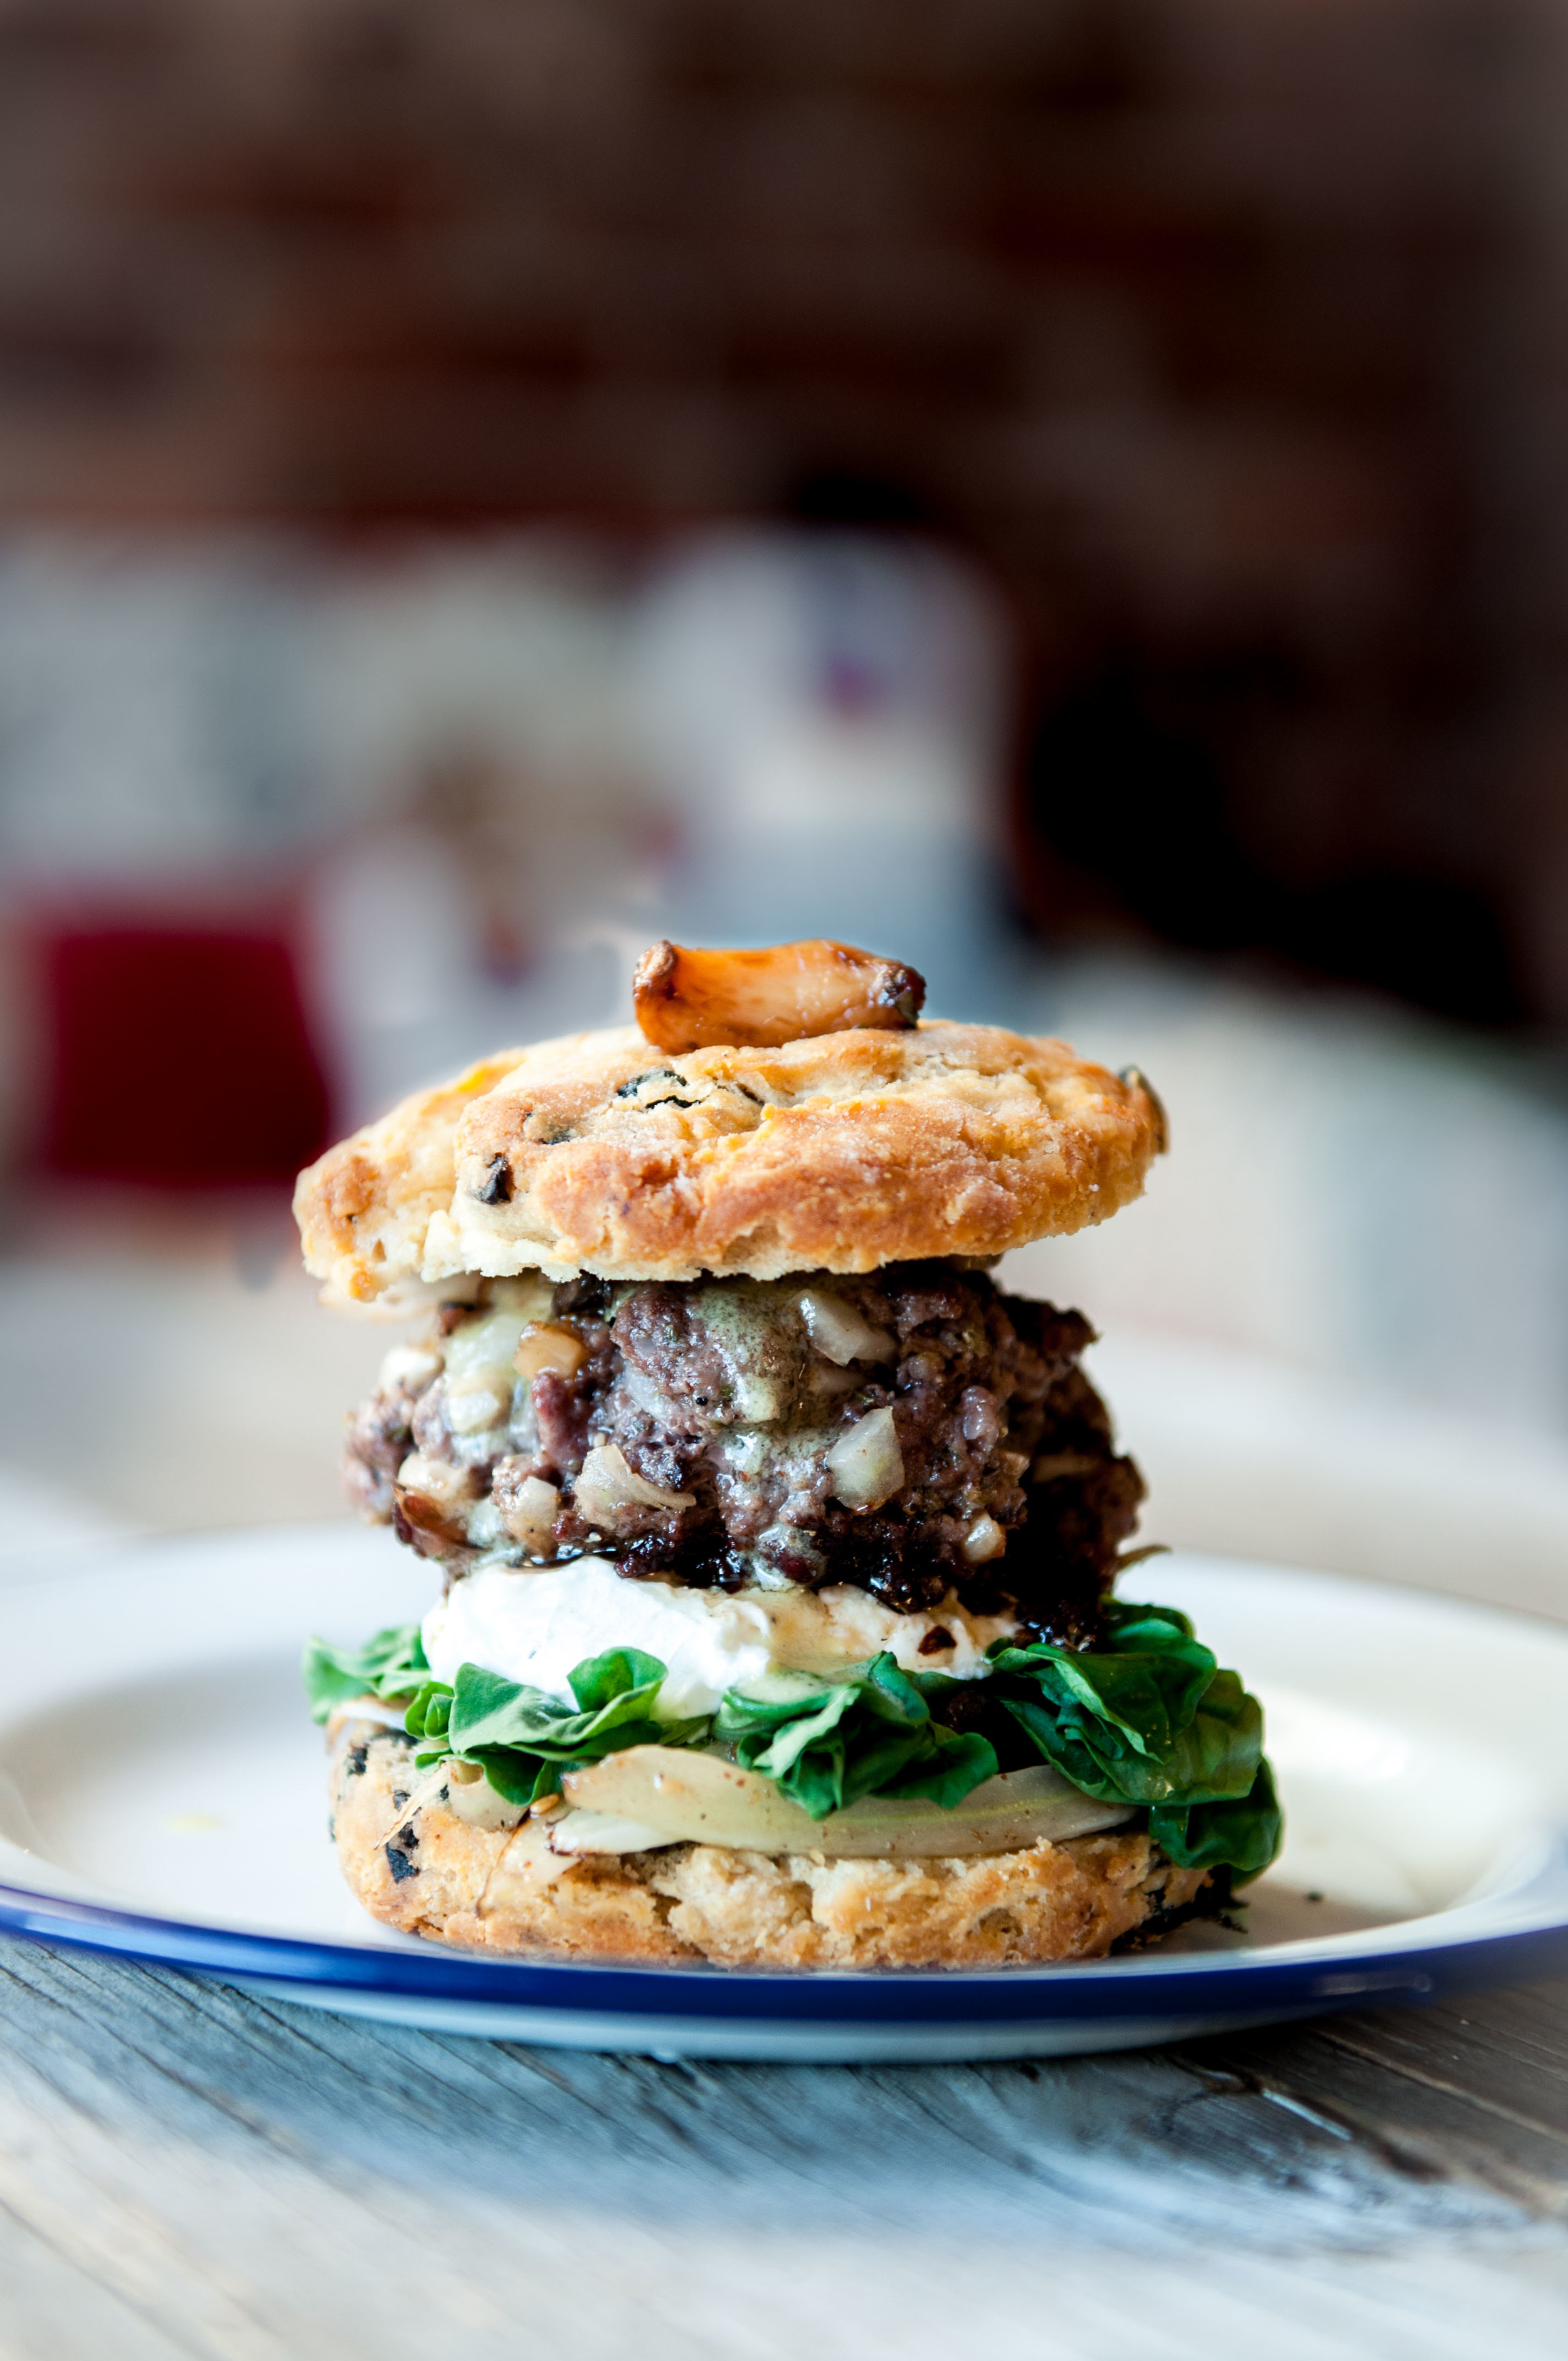 fennel and beef burger sandwiched in gluten free olive scones